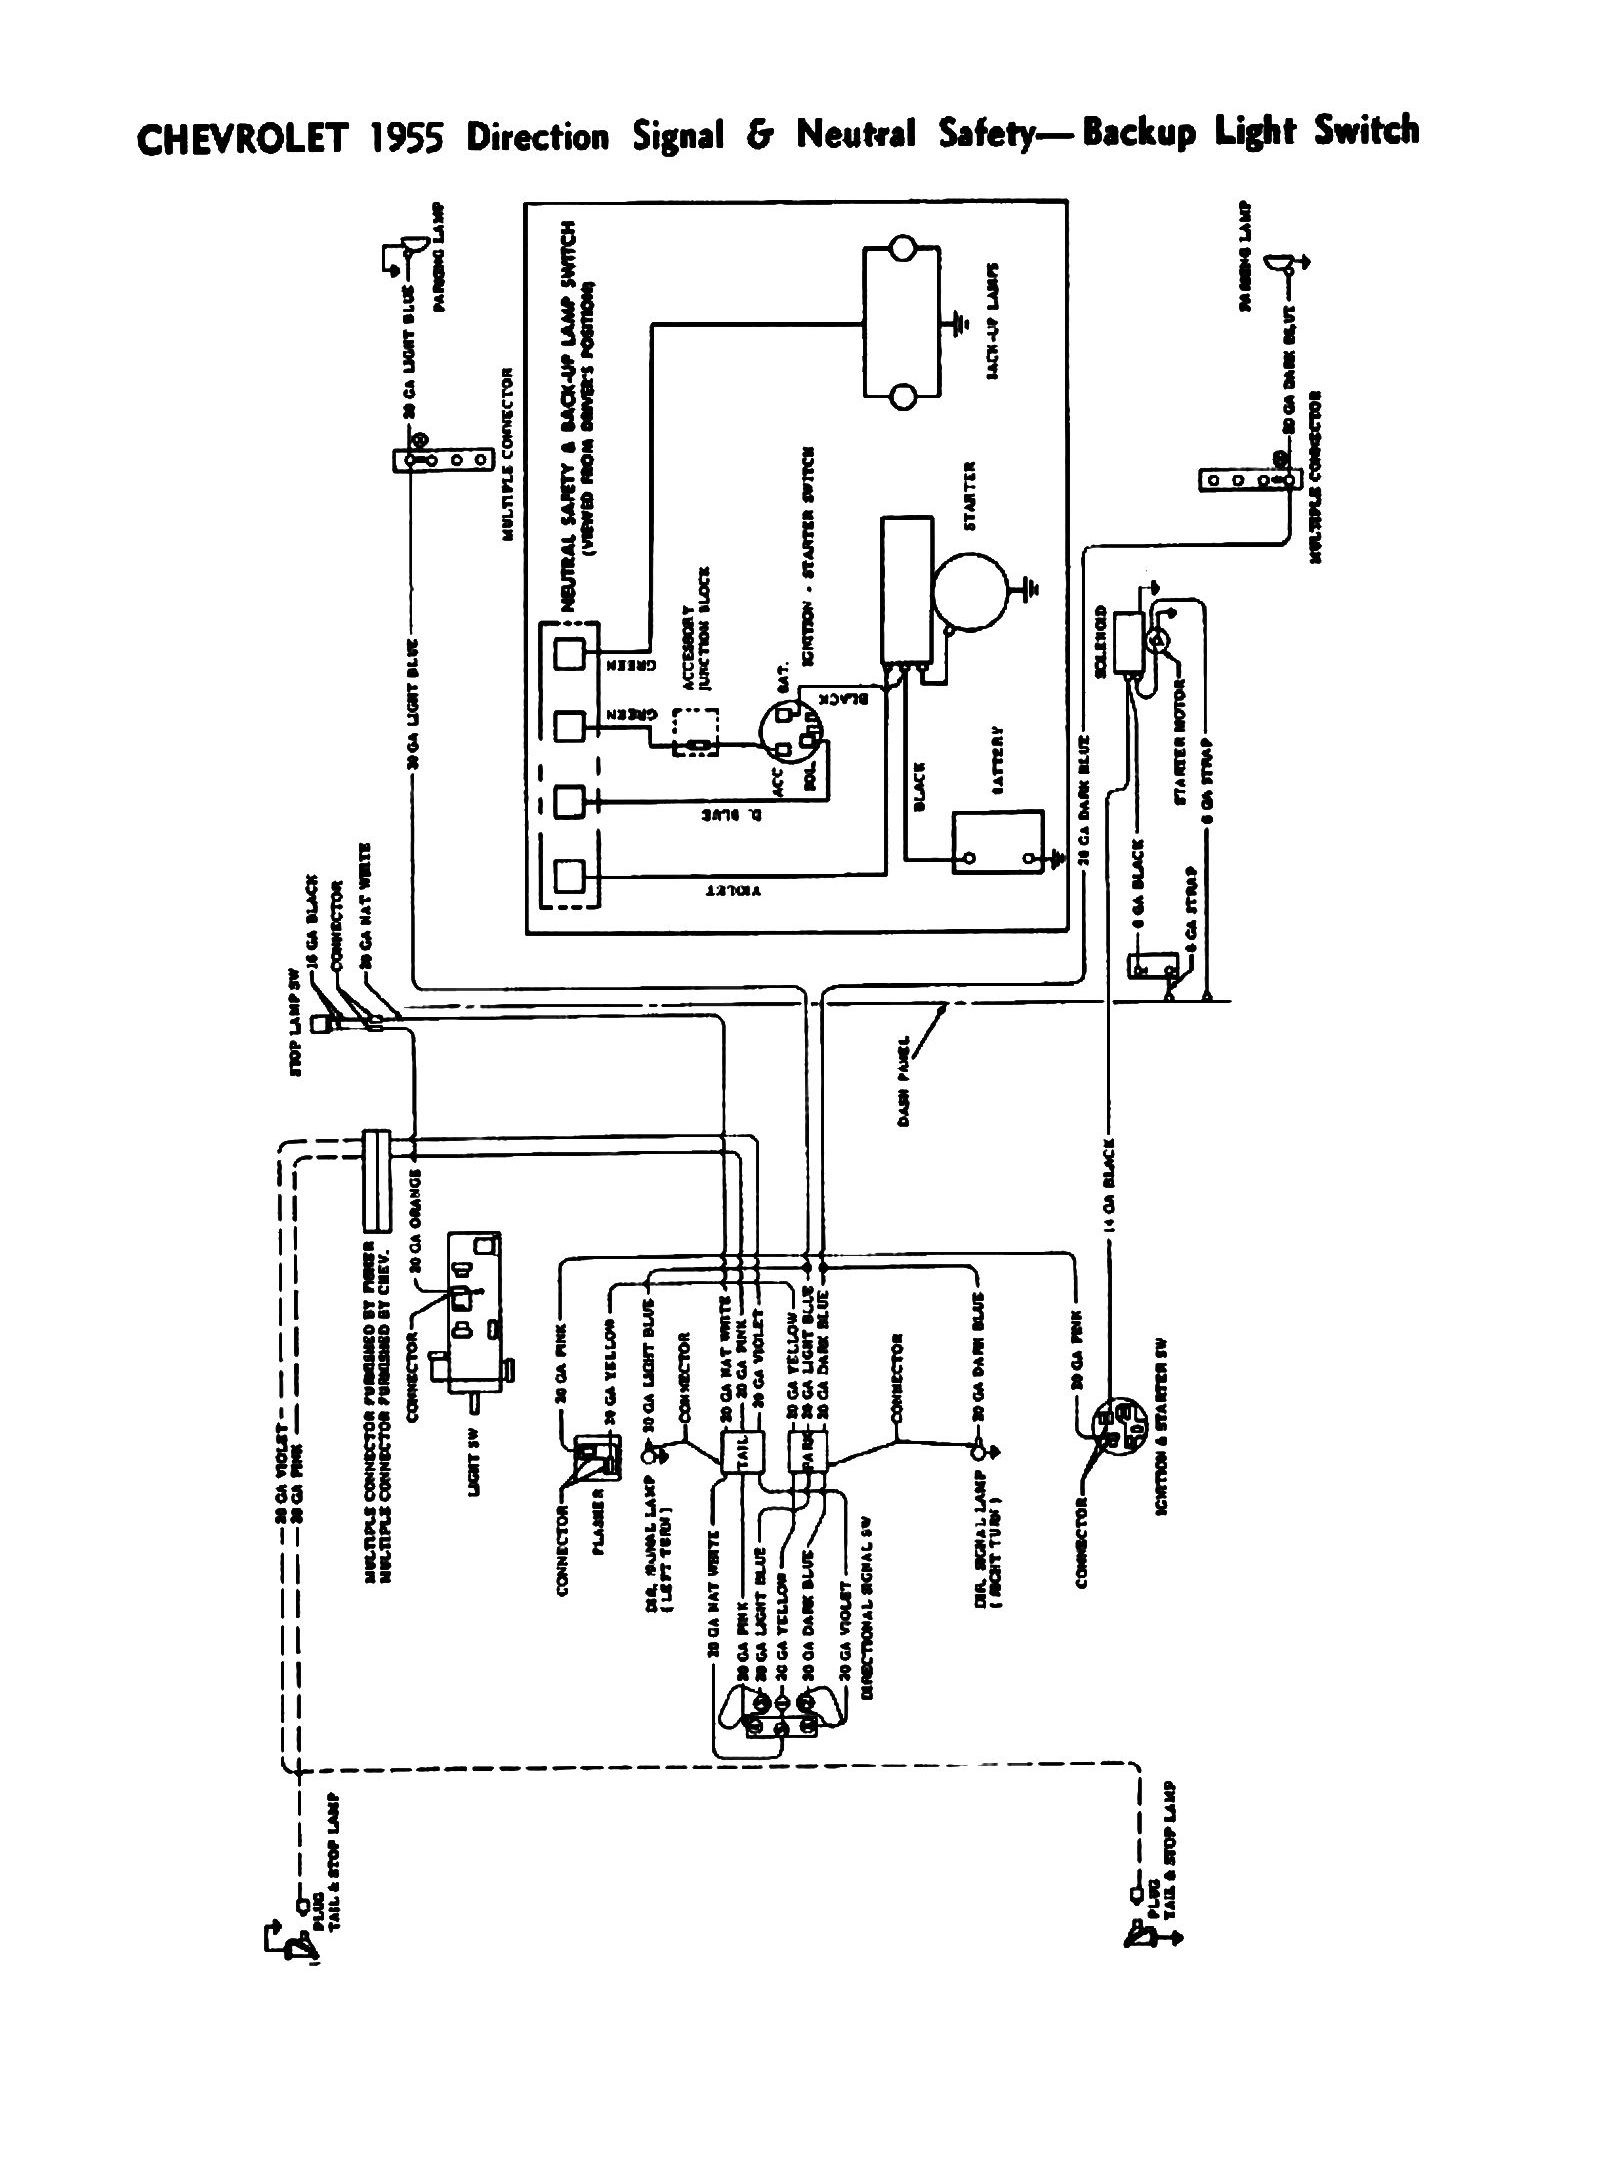 small engine ignition switch wiring diagram 1957 chevy heater wiring diagram wiring diagrams of small engine ignition switch wiring diagram?quality\\\\\\\\\\\\\\\\\\\\\\\\\\\\\\\\\\\\\\\\\\\\\\\\\\\\\\\\\\\\\\\=80\\\\\\\\\\\\\\\\\\\\\\\\\\\\\\\\\\\\\\\\\\\\\\\\\\\\\\\\\\\\\\\&strip\\\\\\\\\\\\\\\\\\\\\\\\\\\\\\\\\\\\\\\\\\\\\\\\\\\\\\\\\\\\\\\=all 1957 chevy painless wiring diagram wiring diagram data